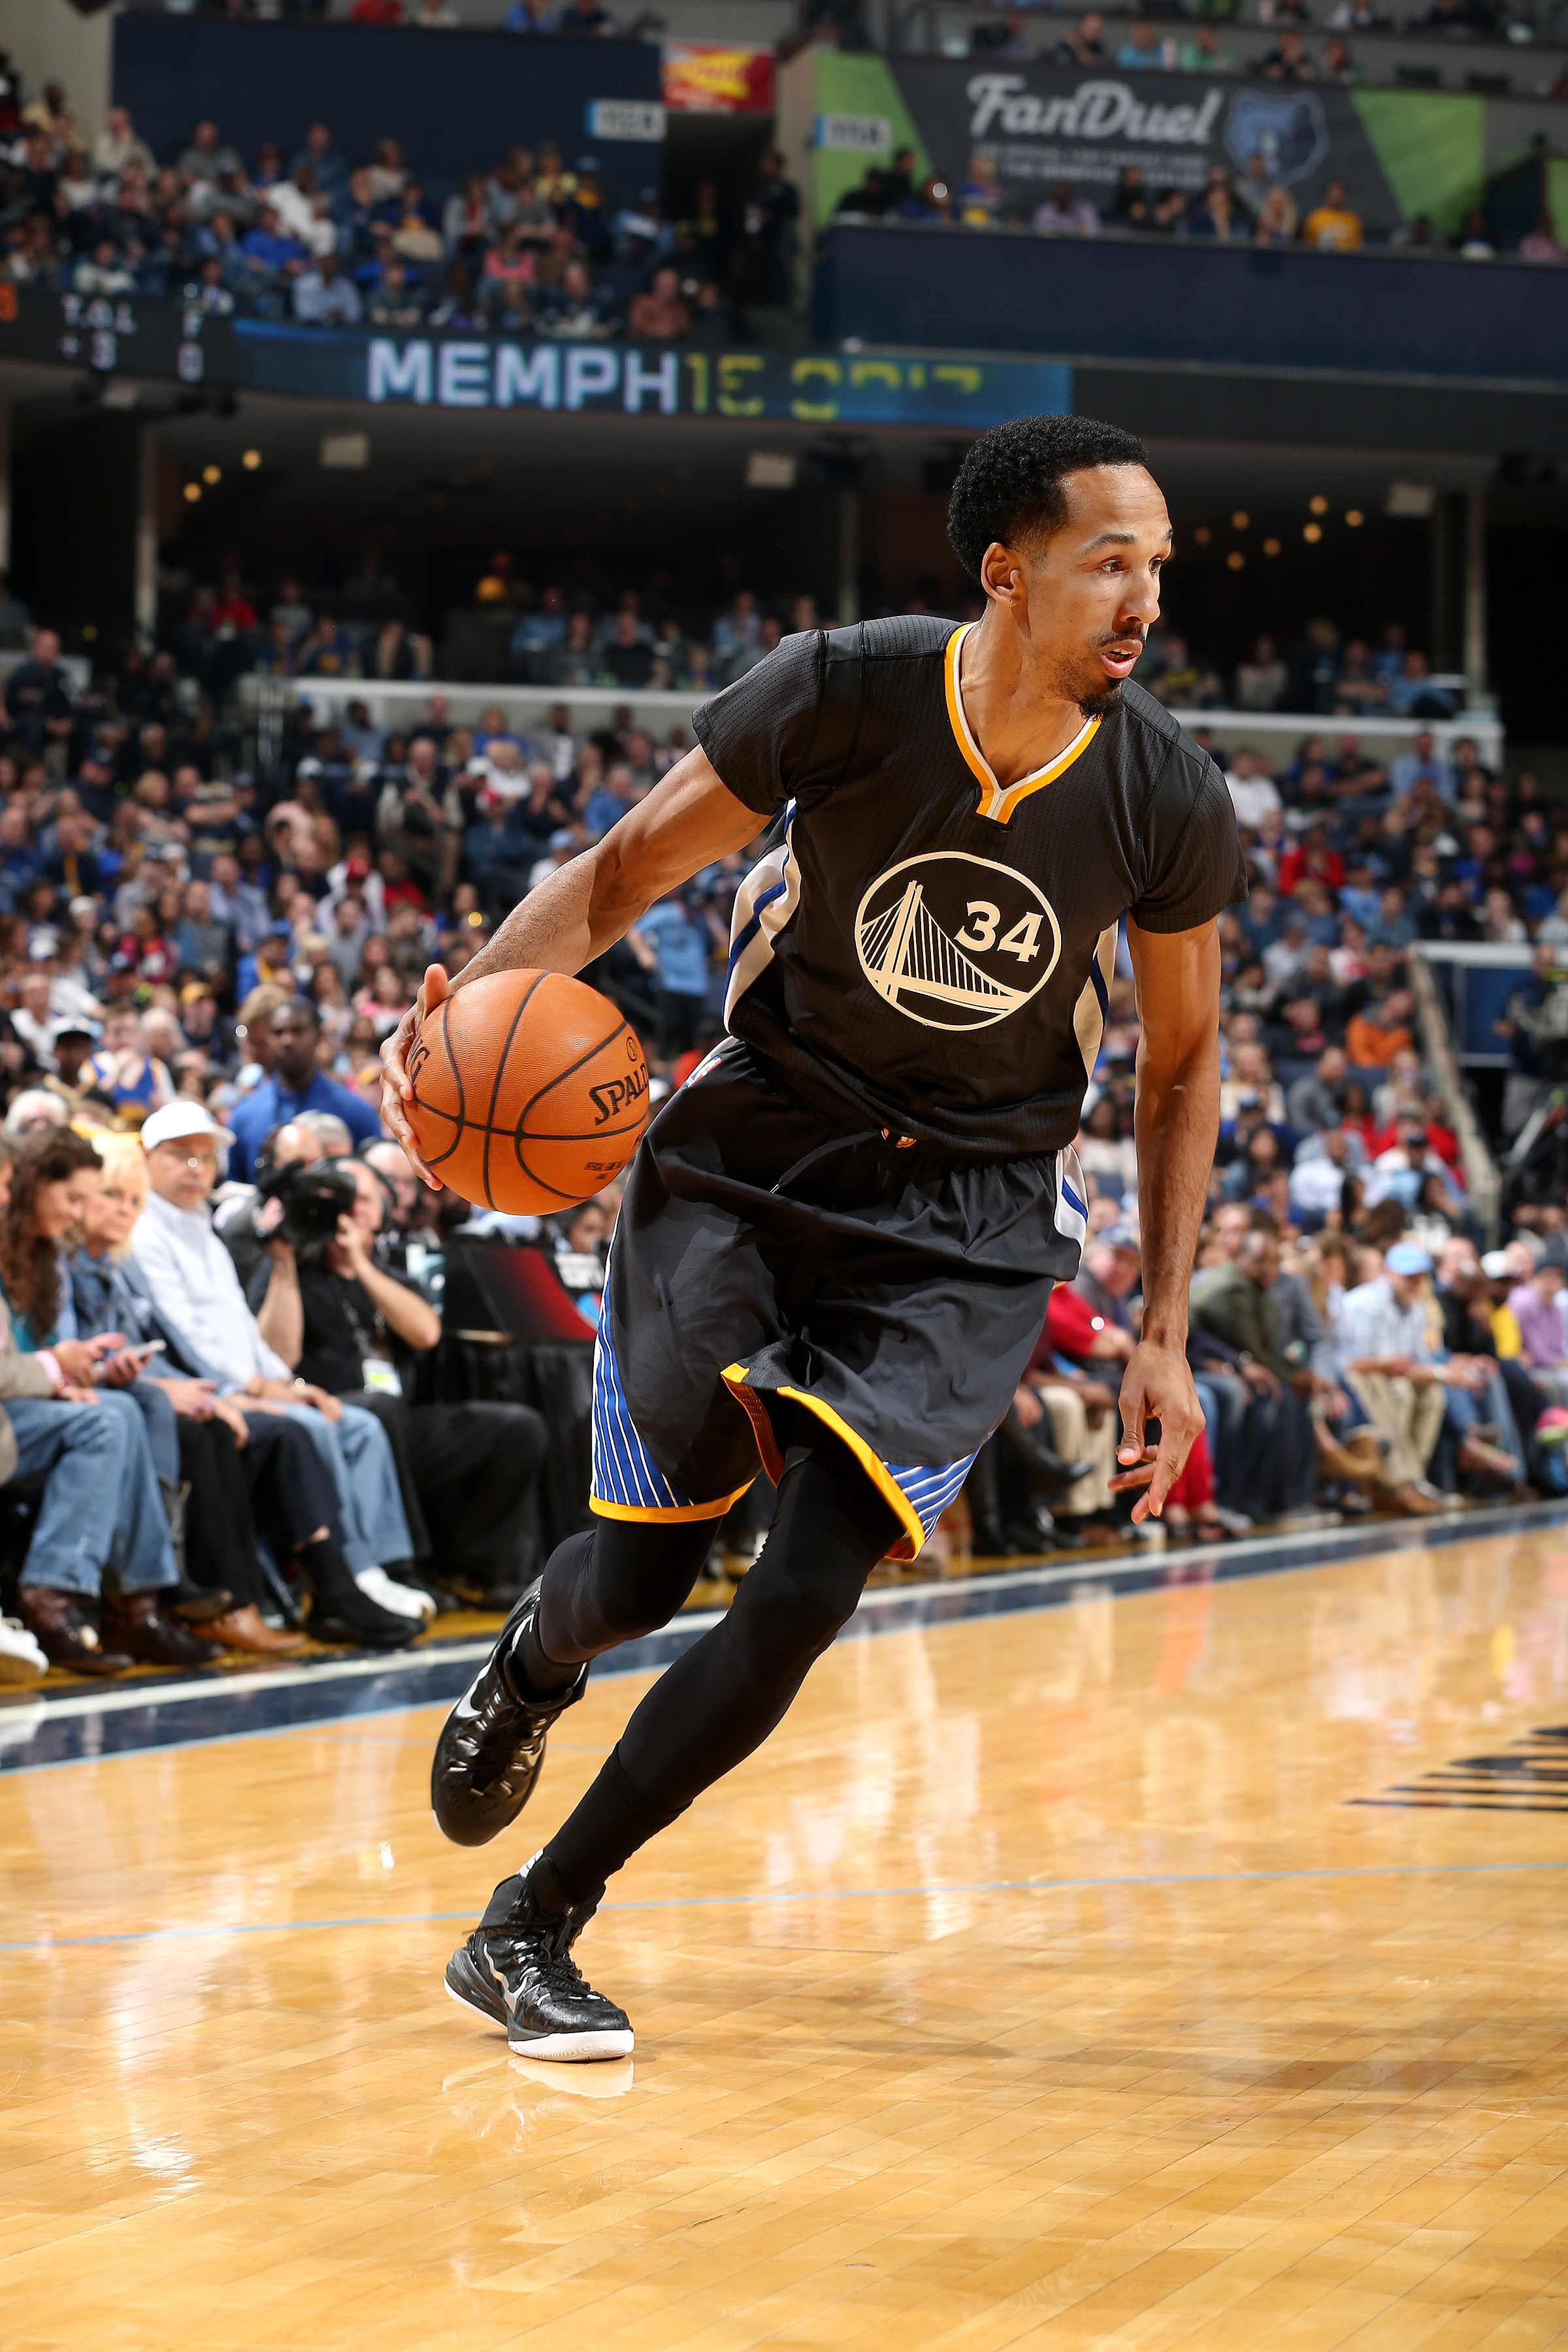 MEMPHIS, TN - APRIL 9: Shaun Livingston #34 of the Golden State Warriors handles the ball during the game against the Memphis Grizzlies on April 9, 2016 at FedExForum in Memphis, Tennessee. (Photo by Joe Murphy/NBAE via Getty Images)